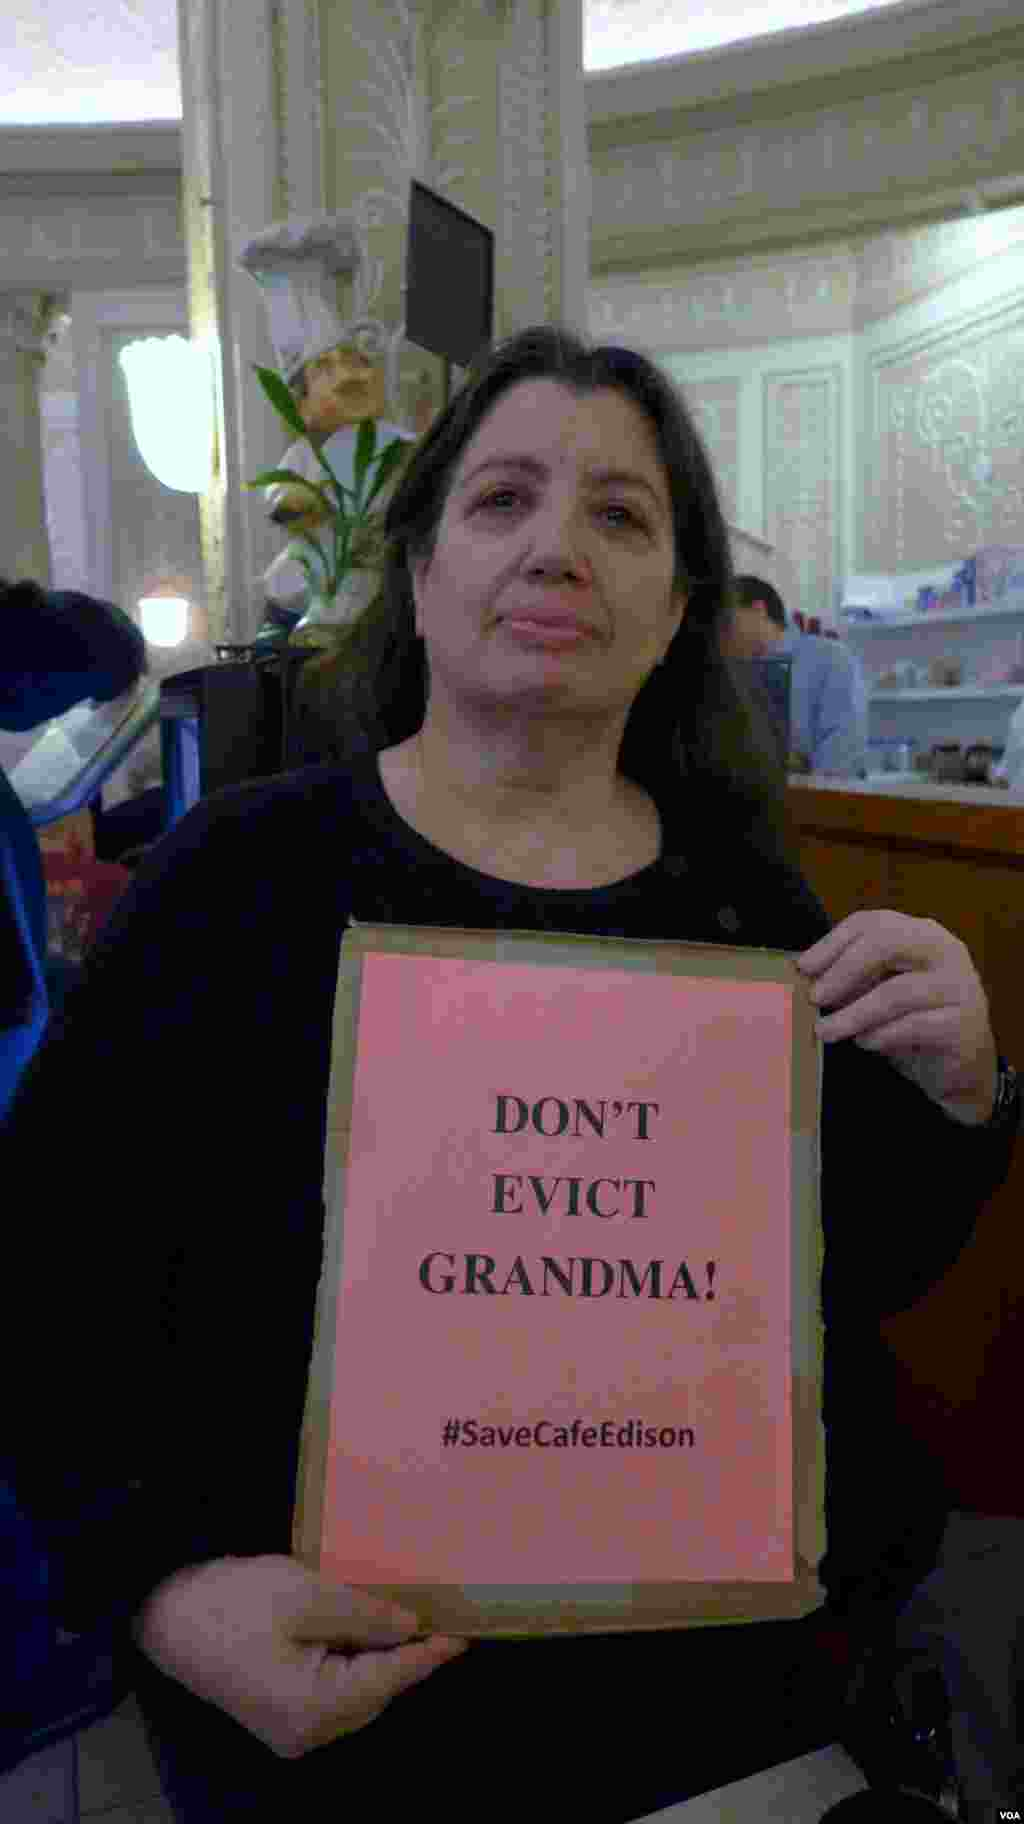 Barbara Nassberg shows off a poster protesting the move to close Café Edison, VOA / Jeff Lunden.